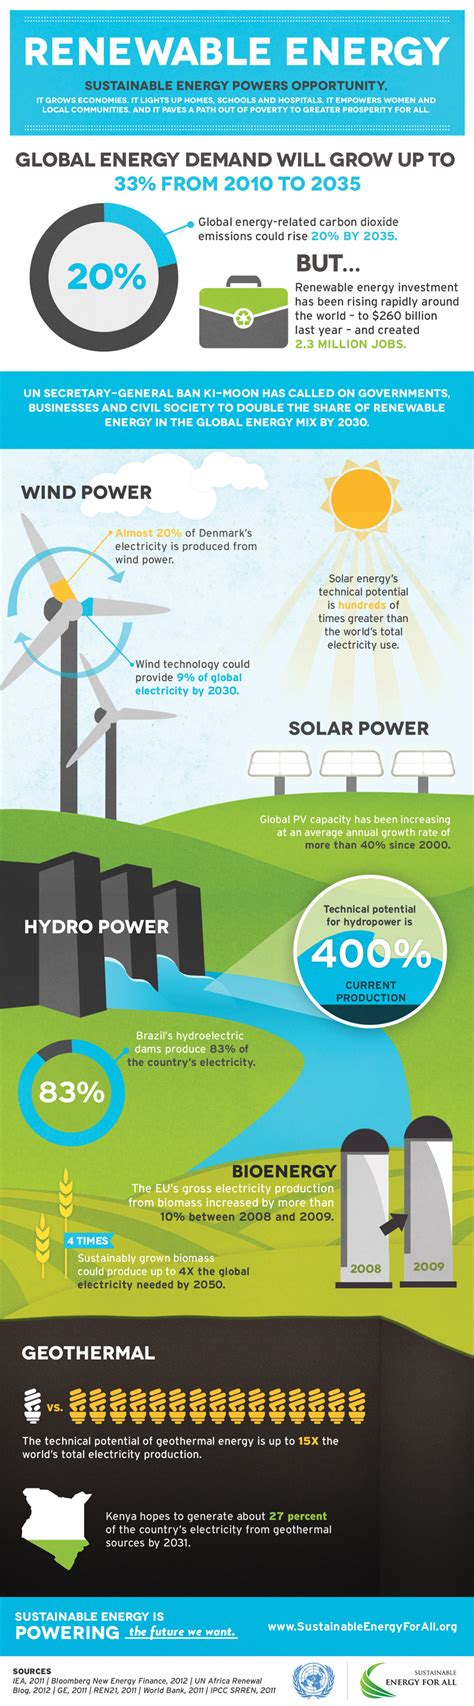 sustainable energy sustainable energy for all renewable energy infographic